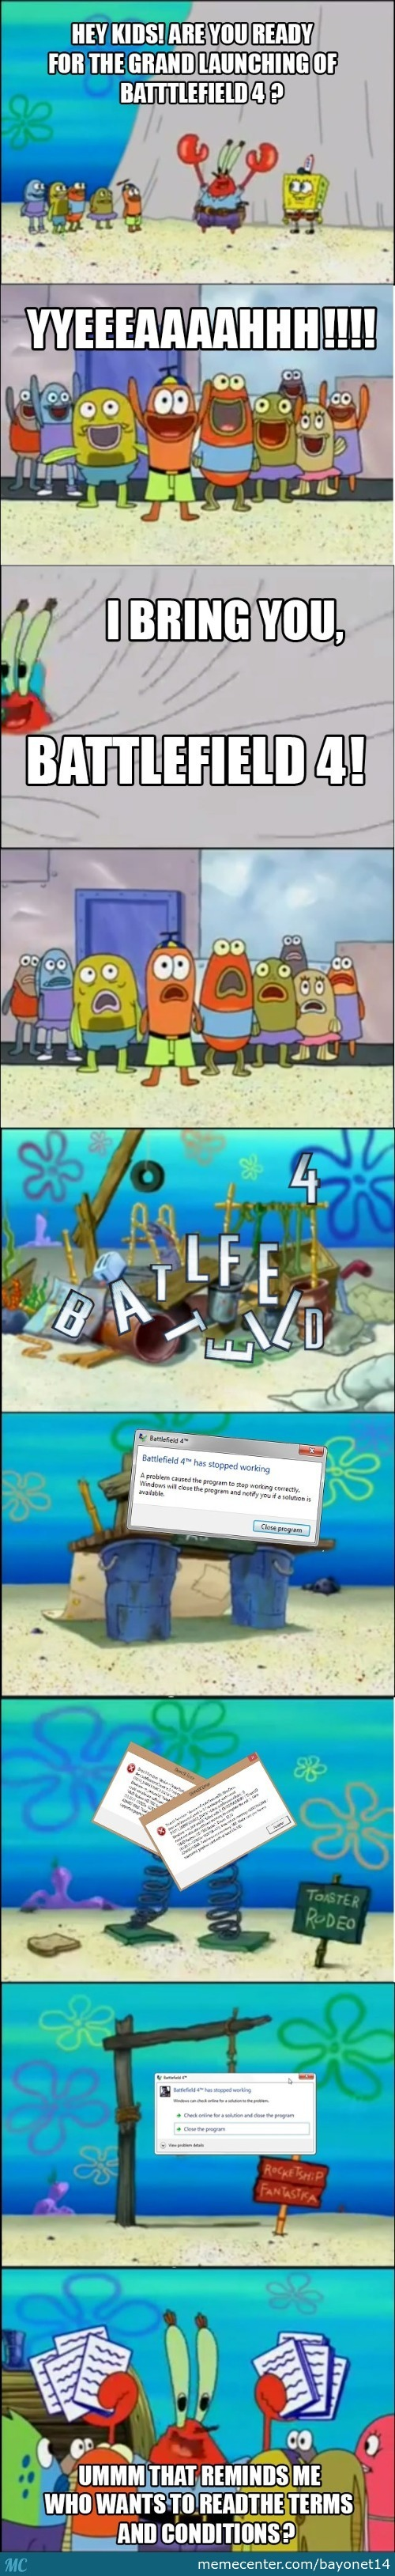 Ea And Battlefield 4 In A Nutshell